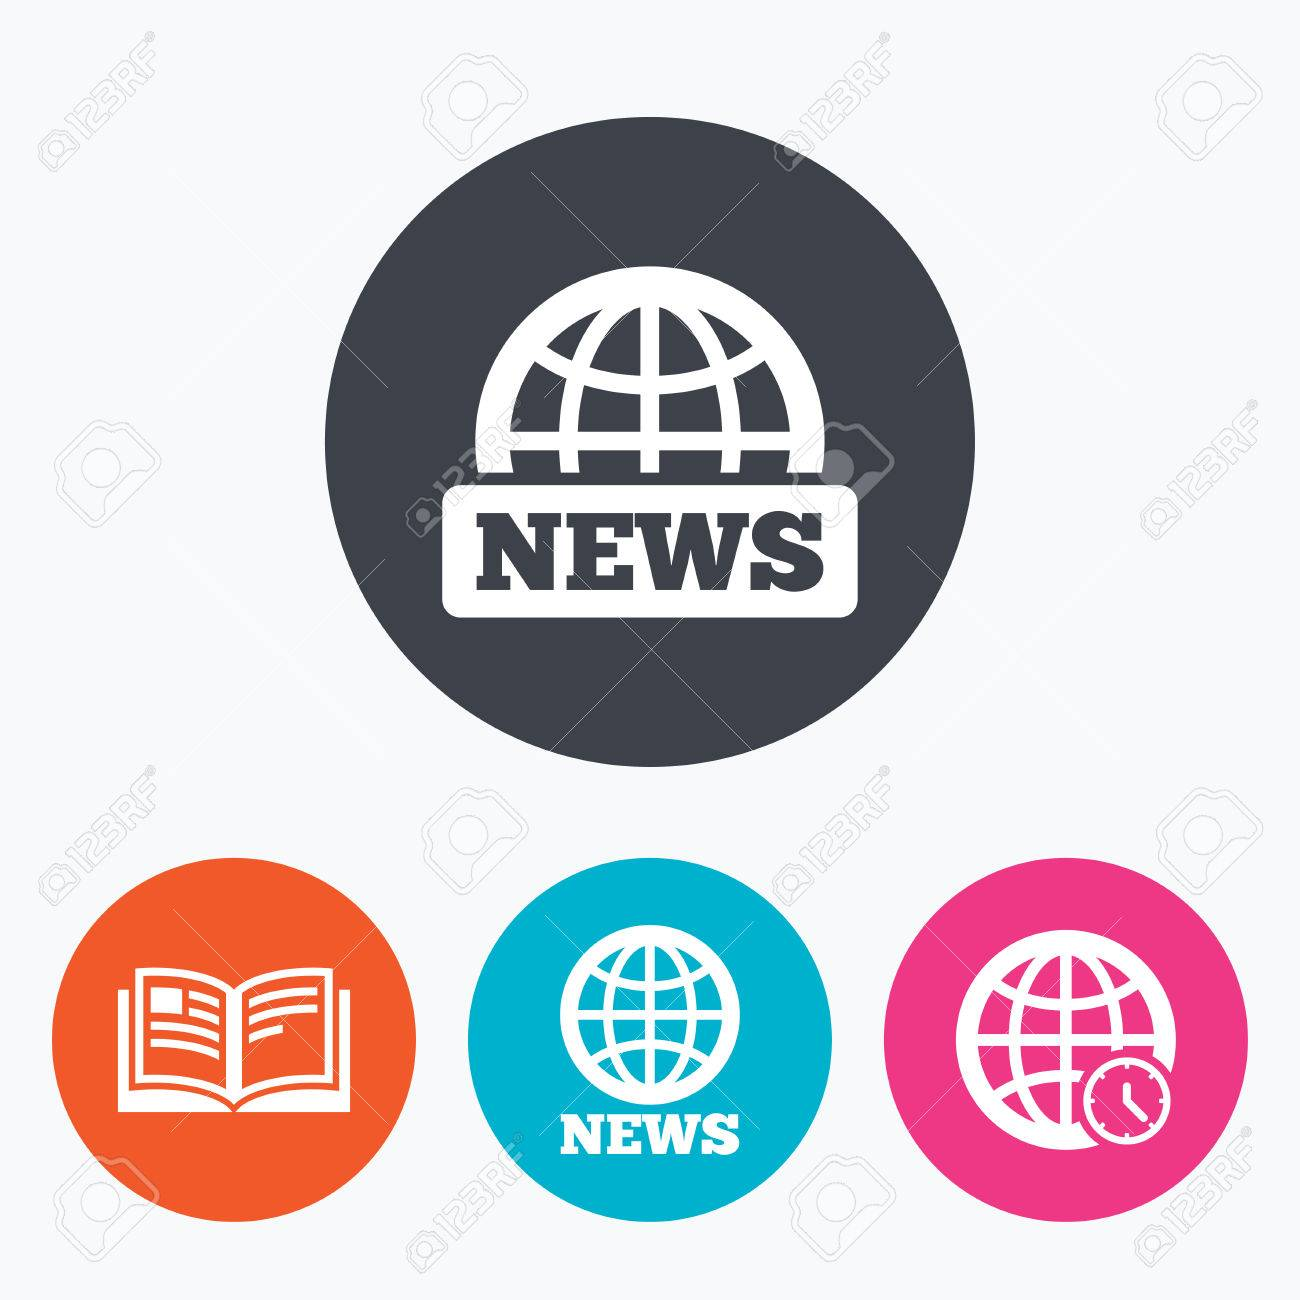 symbol of literature business data pie charts graphs news stock  news icons world globe symbols open book sign education world globe symbols open book sign education